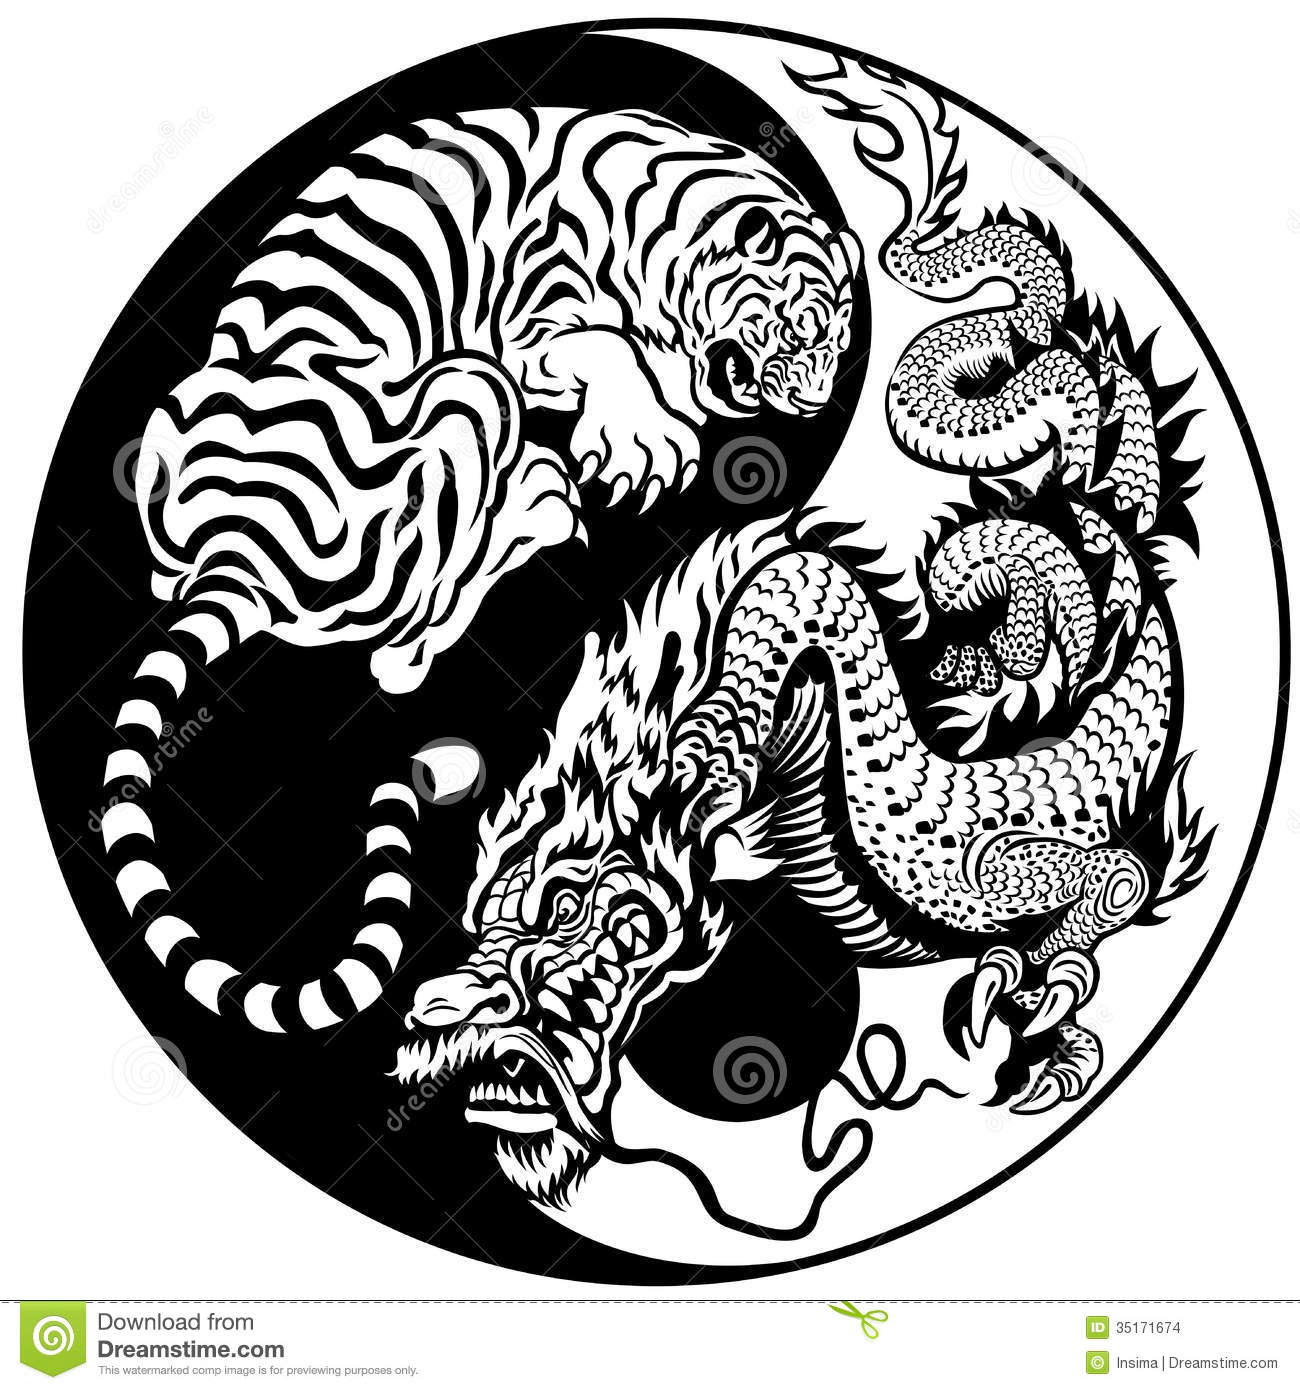 tiger und drache yin yang symbol vektor abbildung. Black Bedroom Furniture Sets. Home Design Ideas